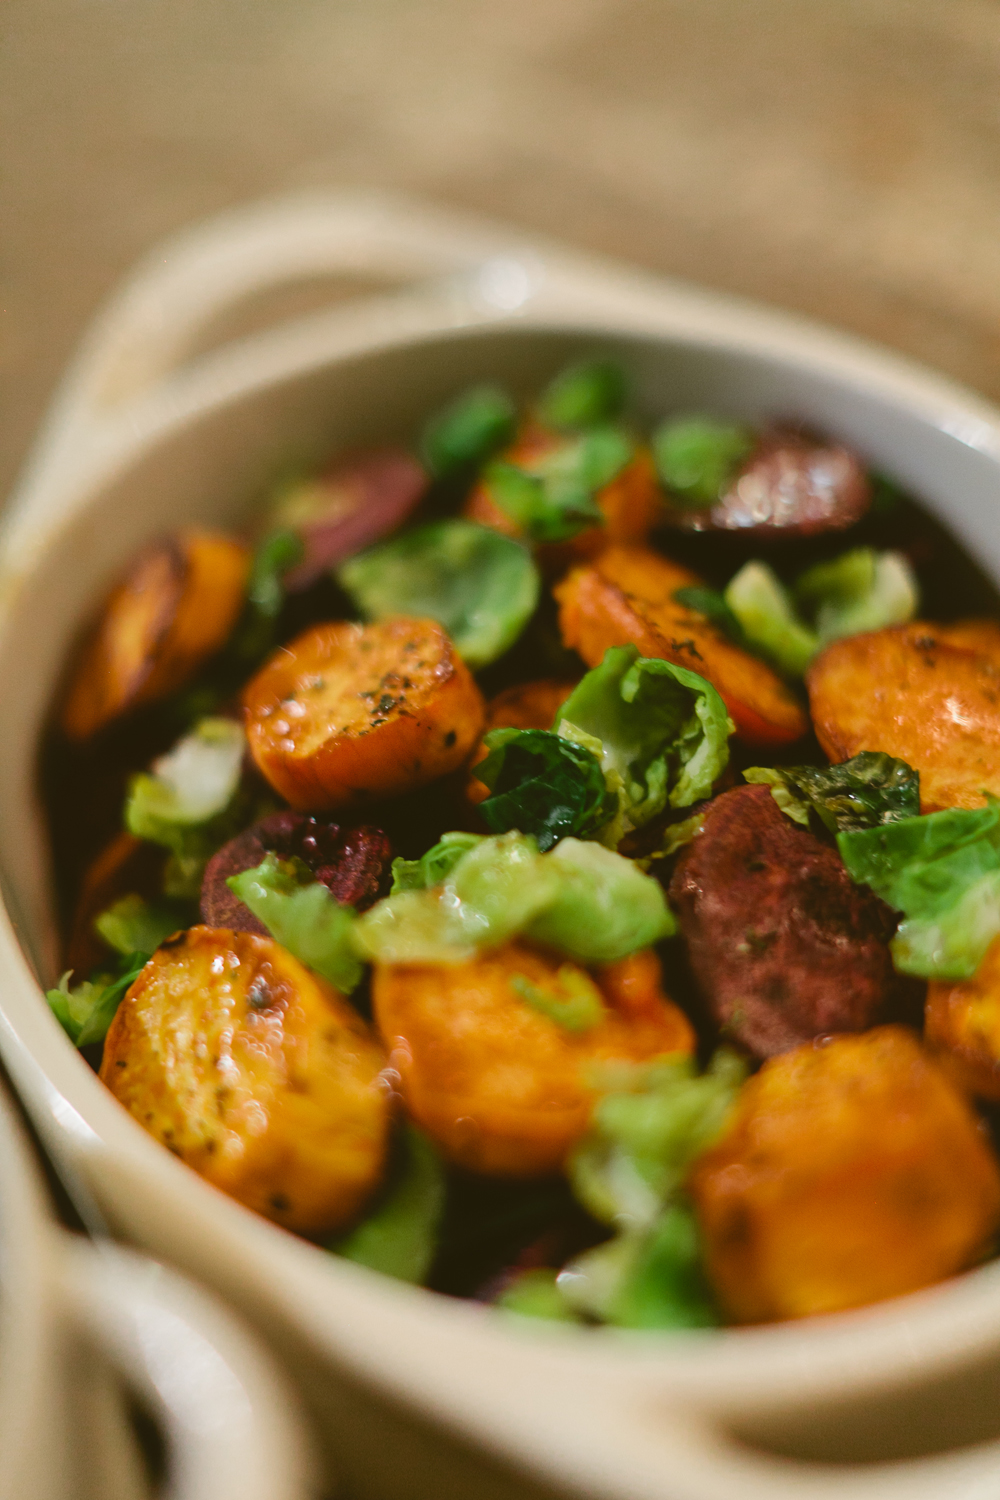 Glazed Sweet Potatoes with Brussels Sprouts and Apples by Jason Jimenez of Homespun ATL from Country Living Fair Atlanta Cooking Demo | Photo by Kathryn McCrary | Holiday Side Dish